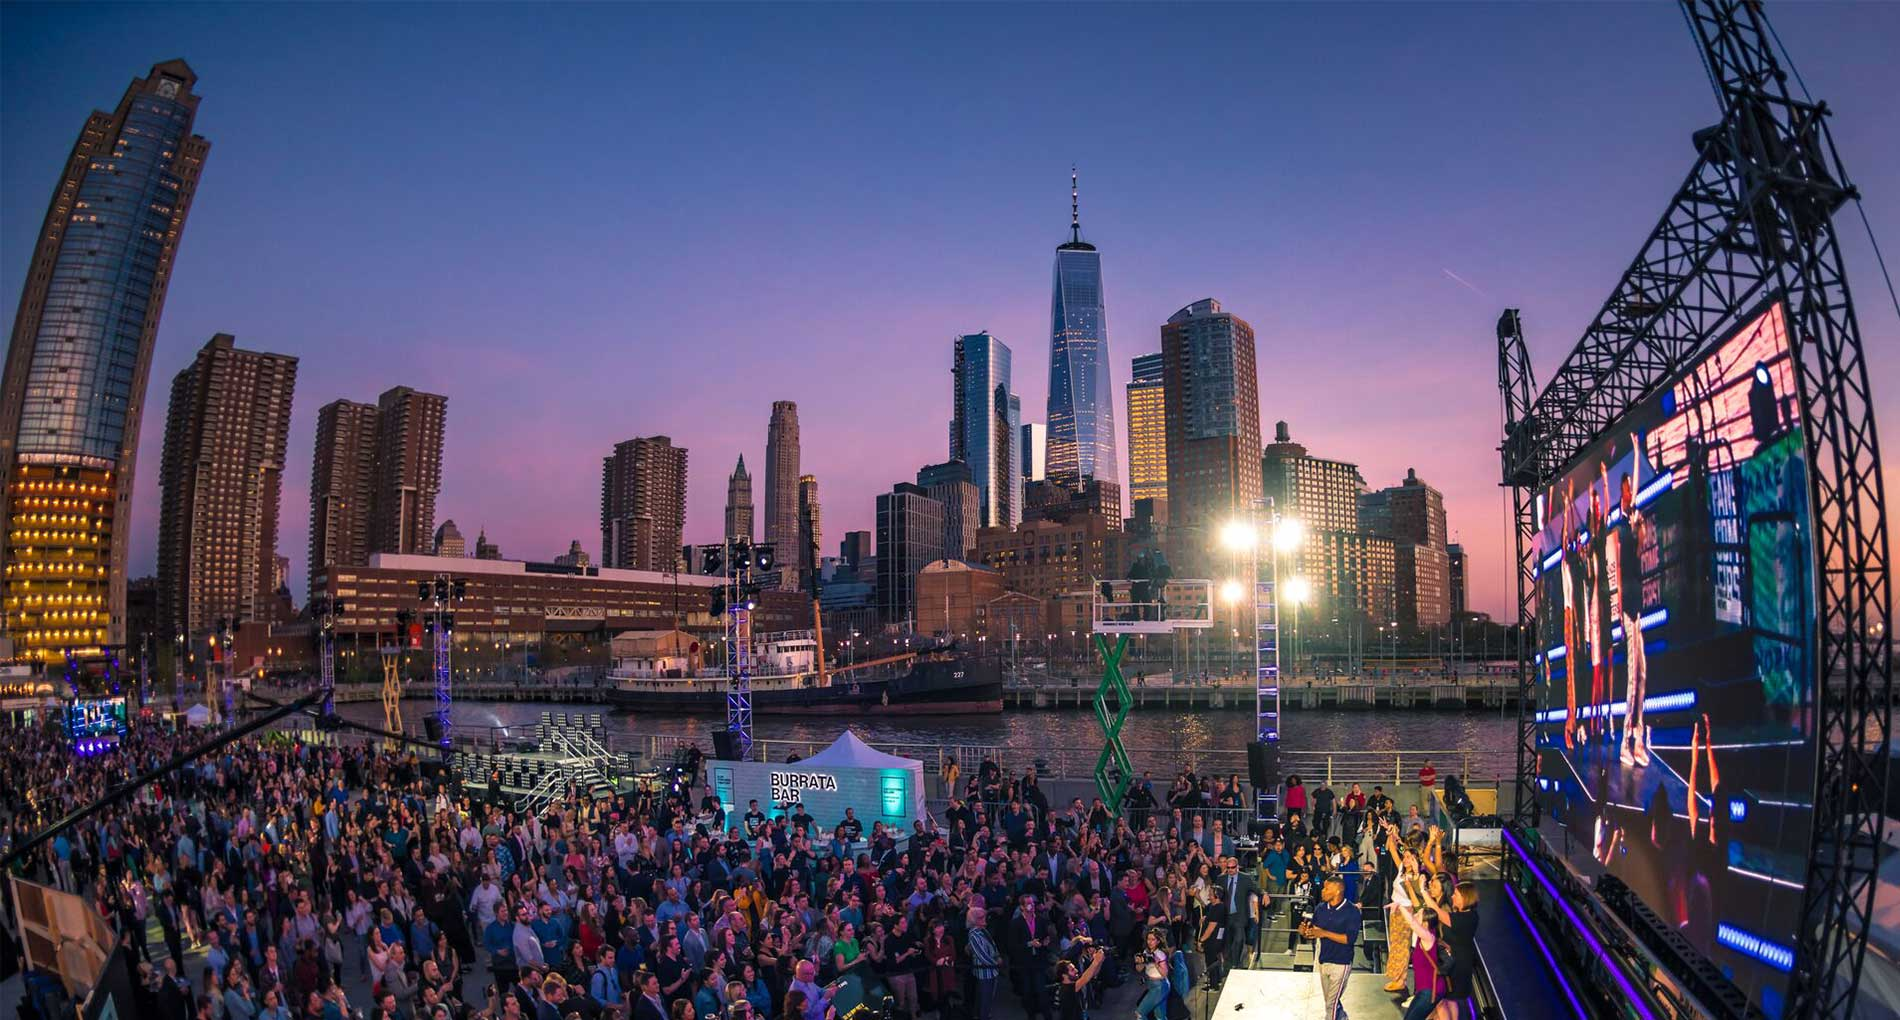 Students Practice Stage Management Skills at New York City Event